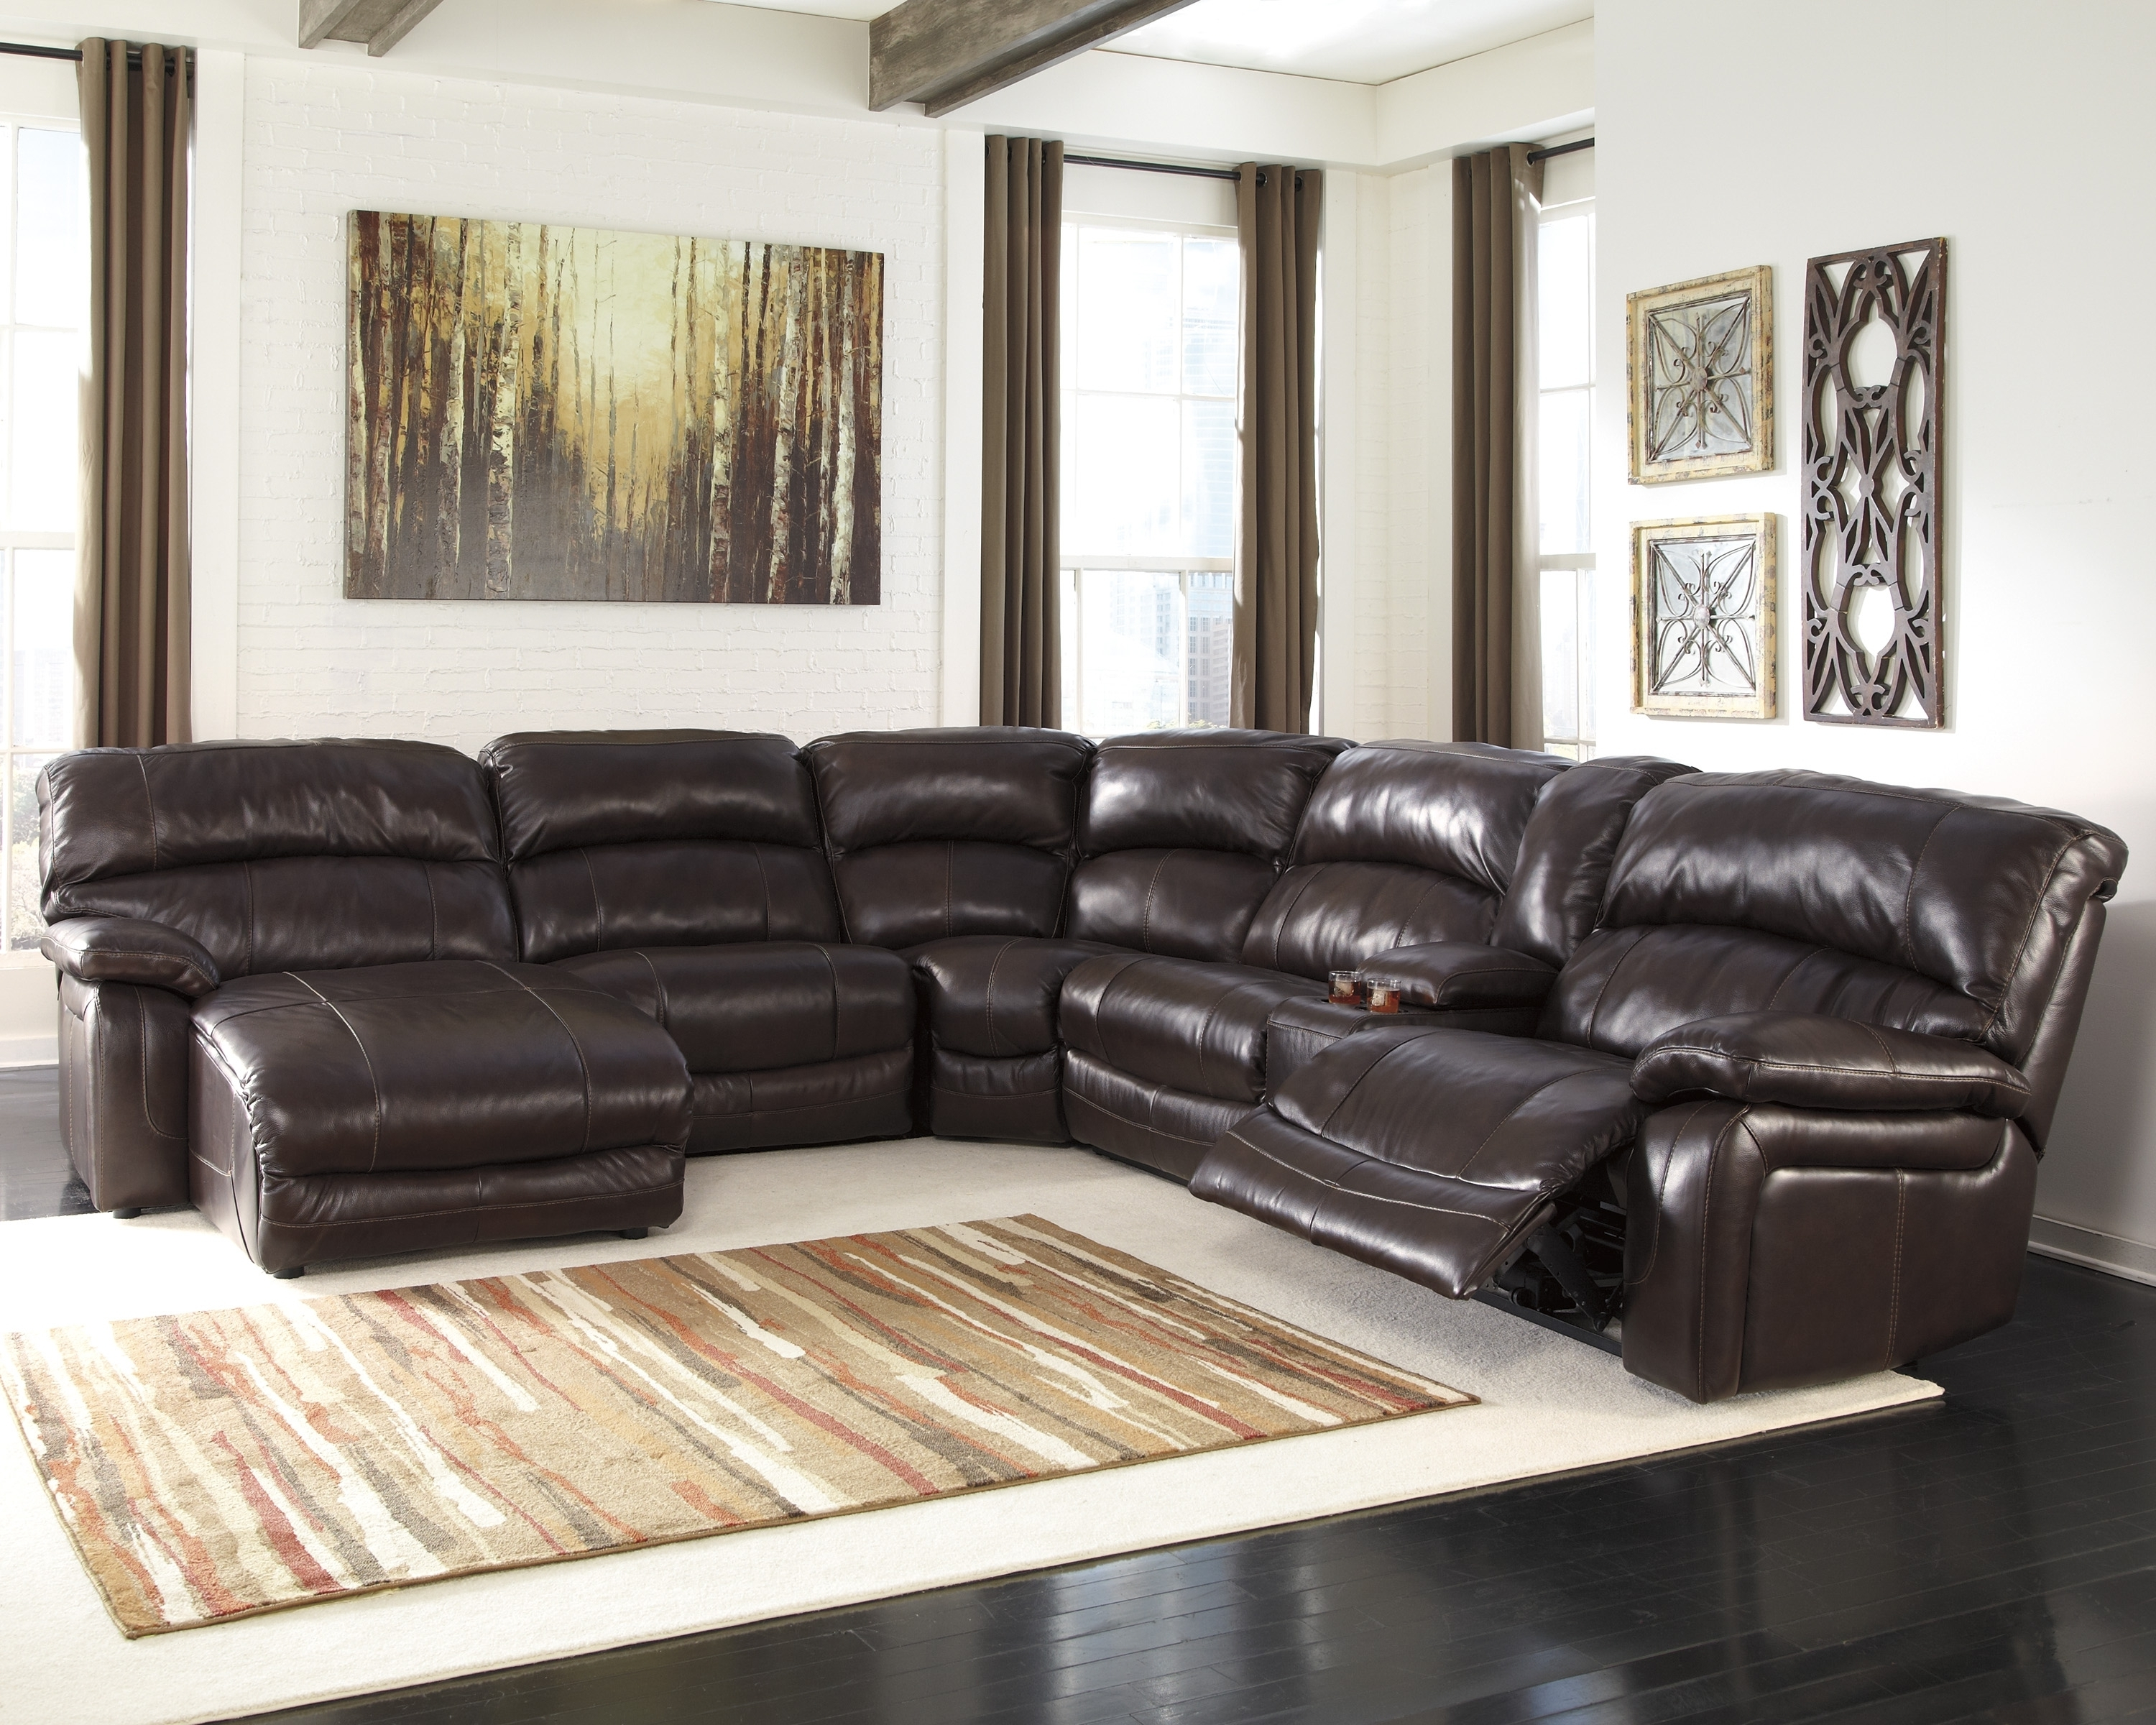 Gallery Craftsman Sectional Sofa – Mediasupload For Well Liked Craftsman Sectional Sofas (View 11 of 20)